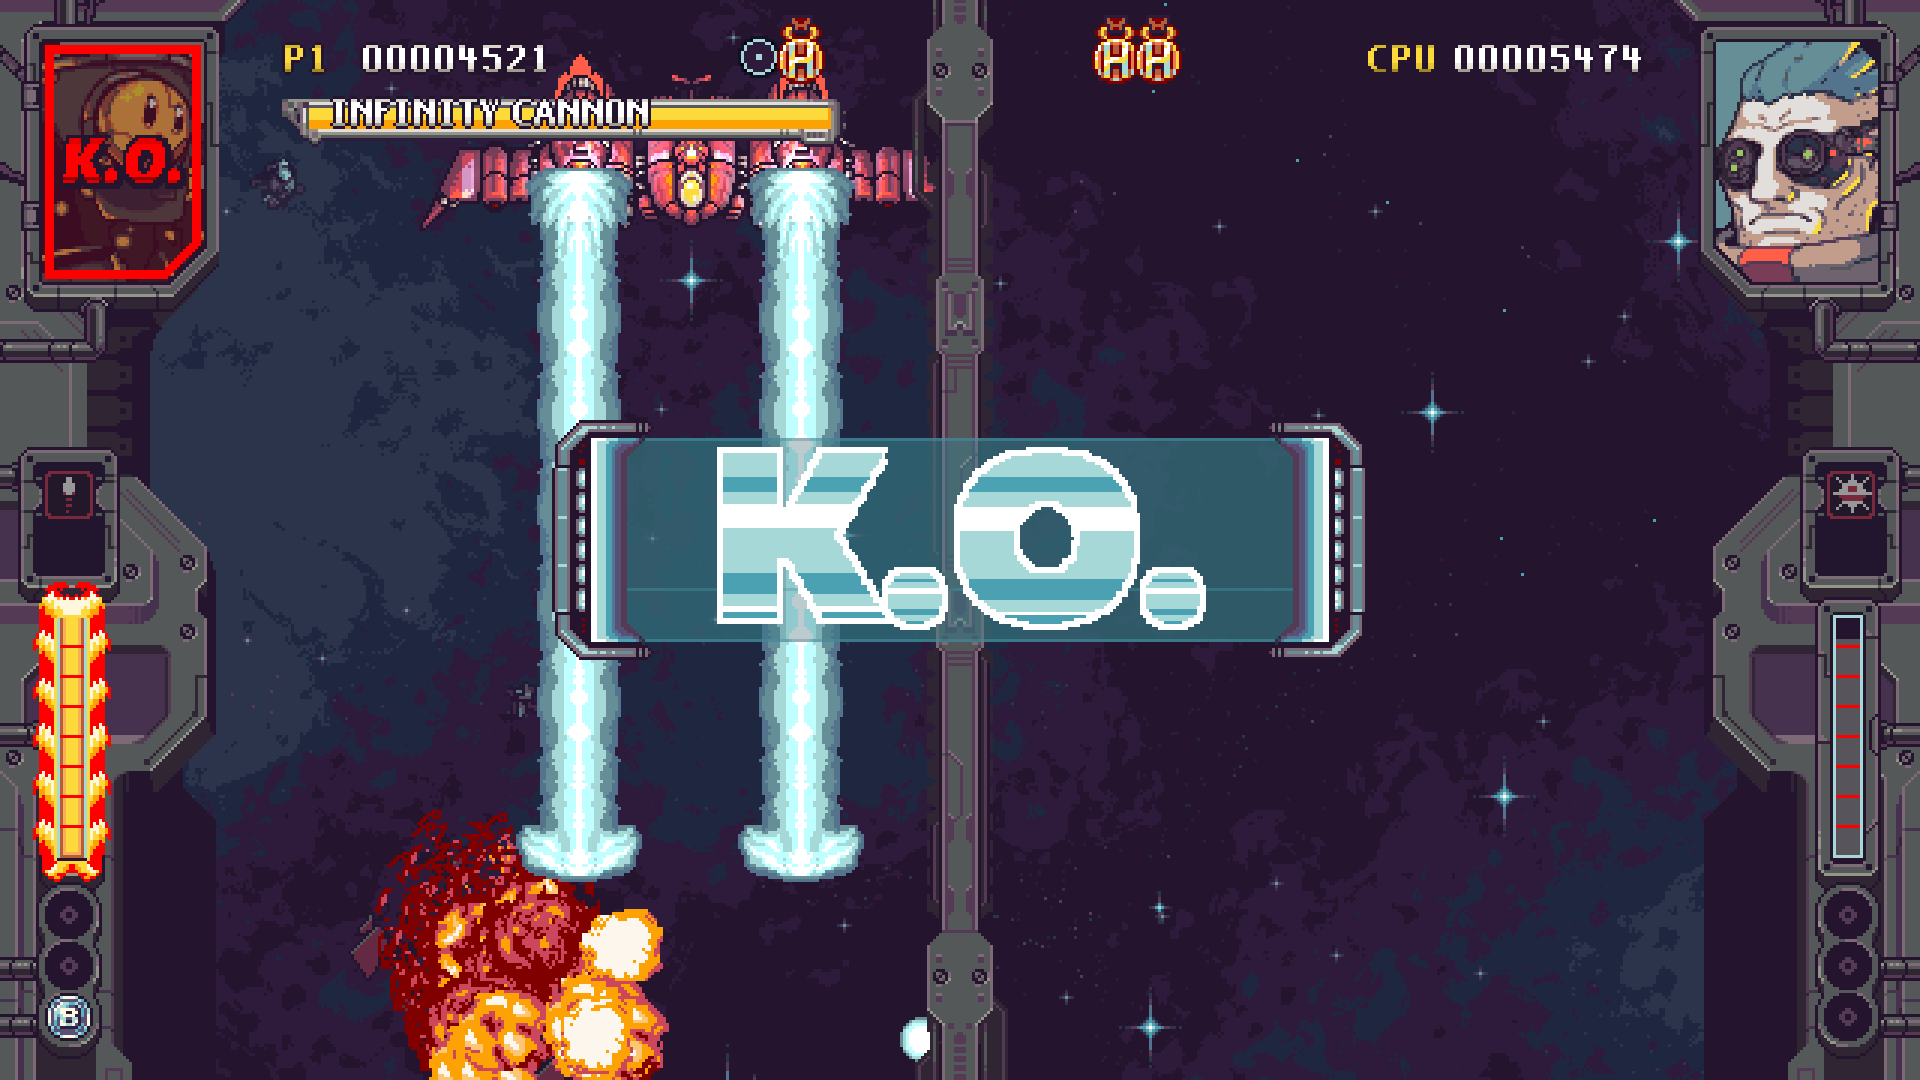 Rival Megagun gameplay screenshot 15